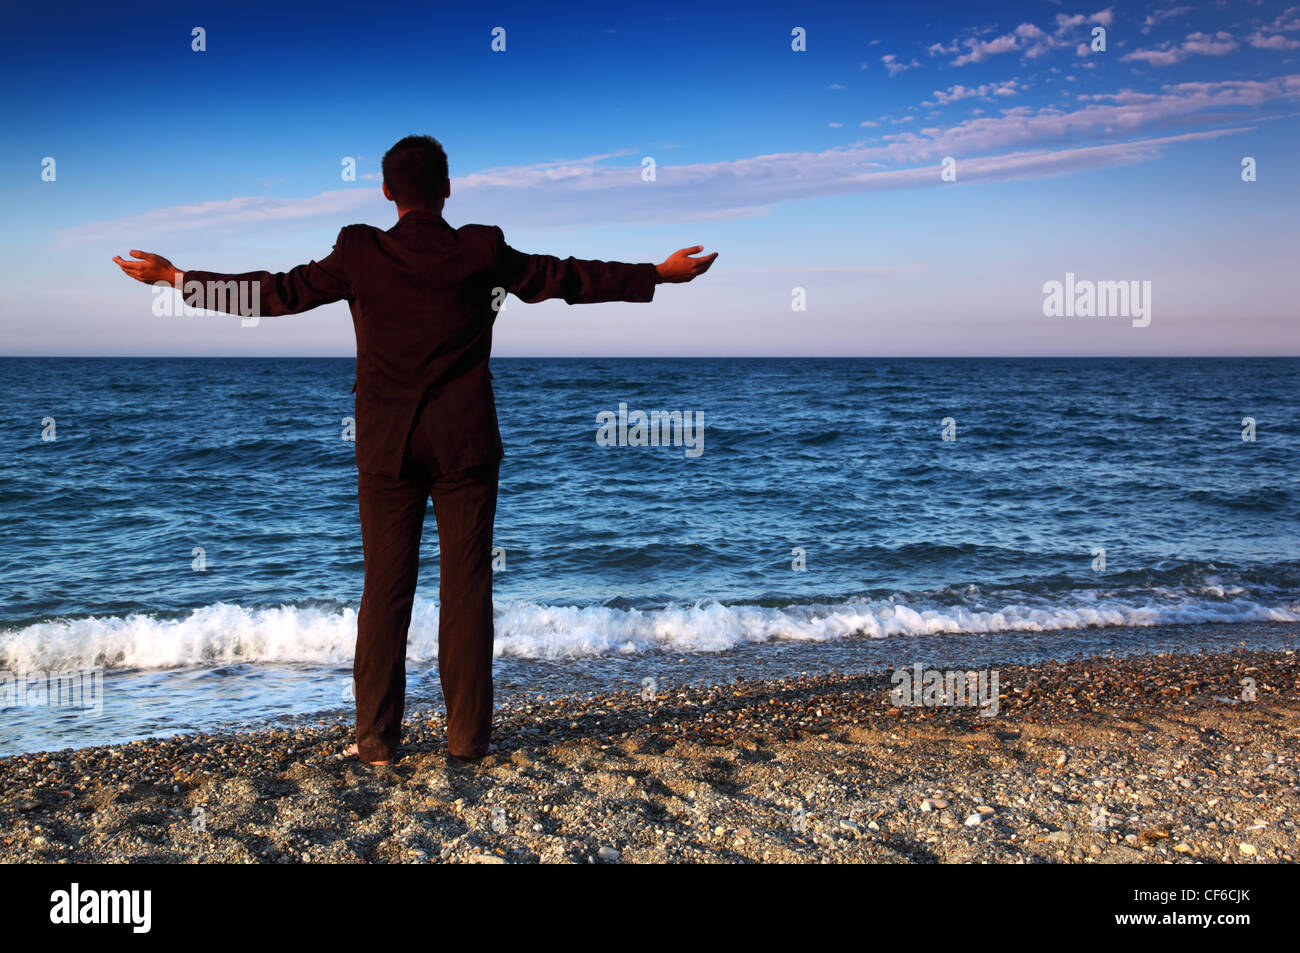 Barefooted man in suit stands back and open hands on stone coast at evening - Stock Image